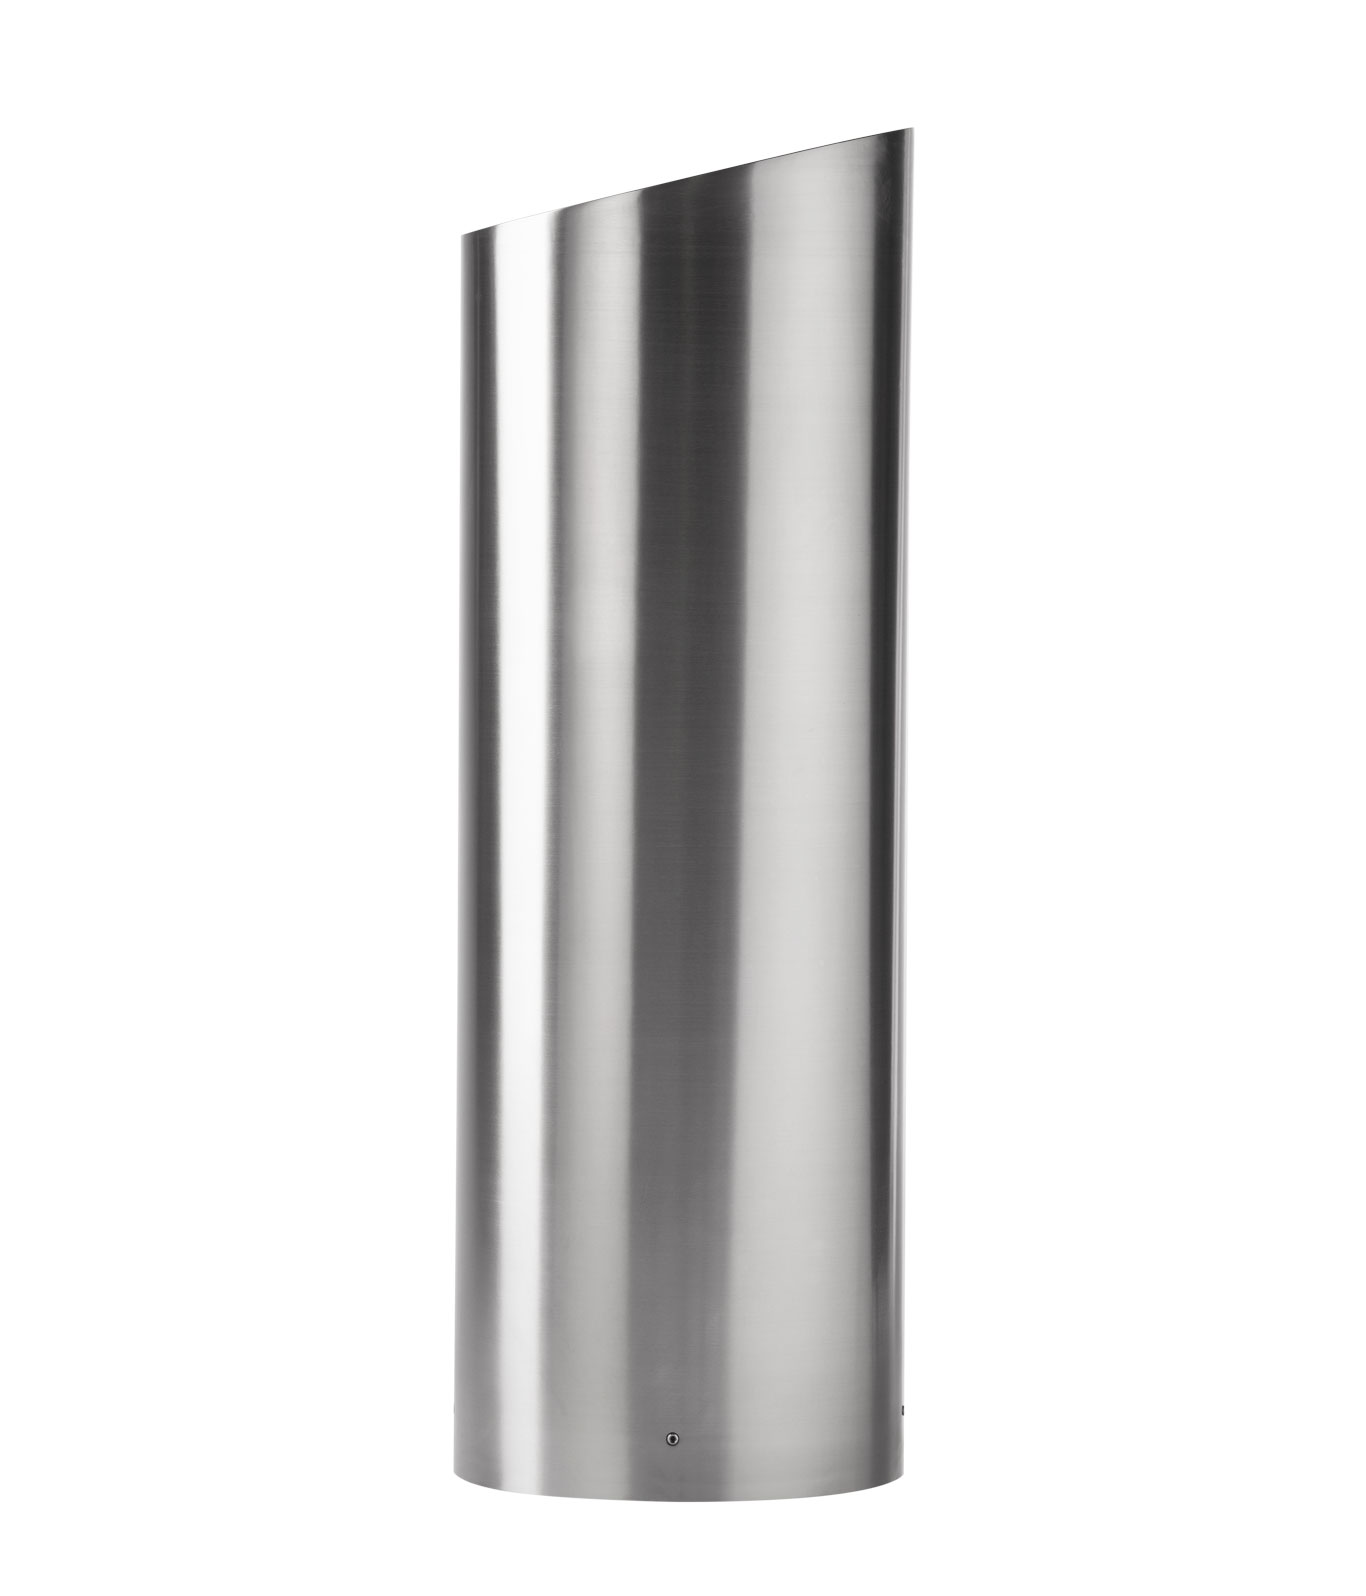 R-7318 stainless steel bollard cover with slant-top design